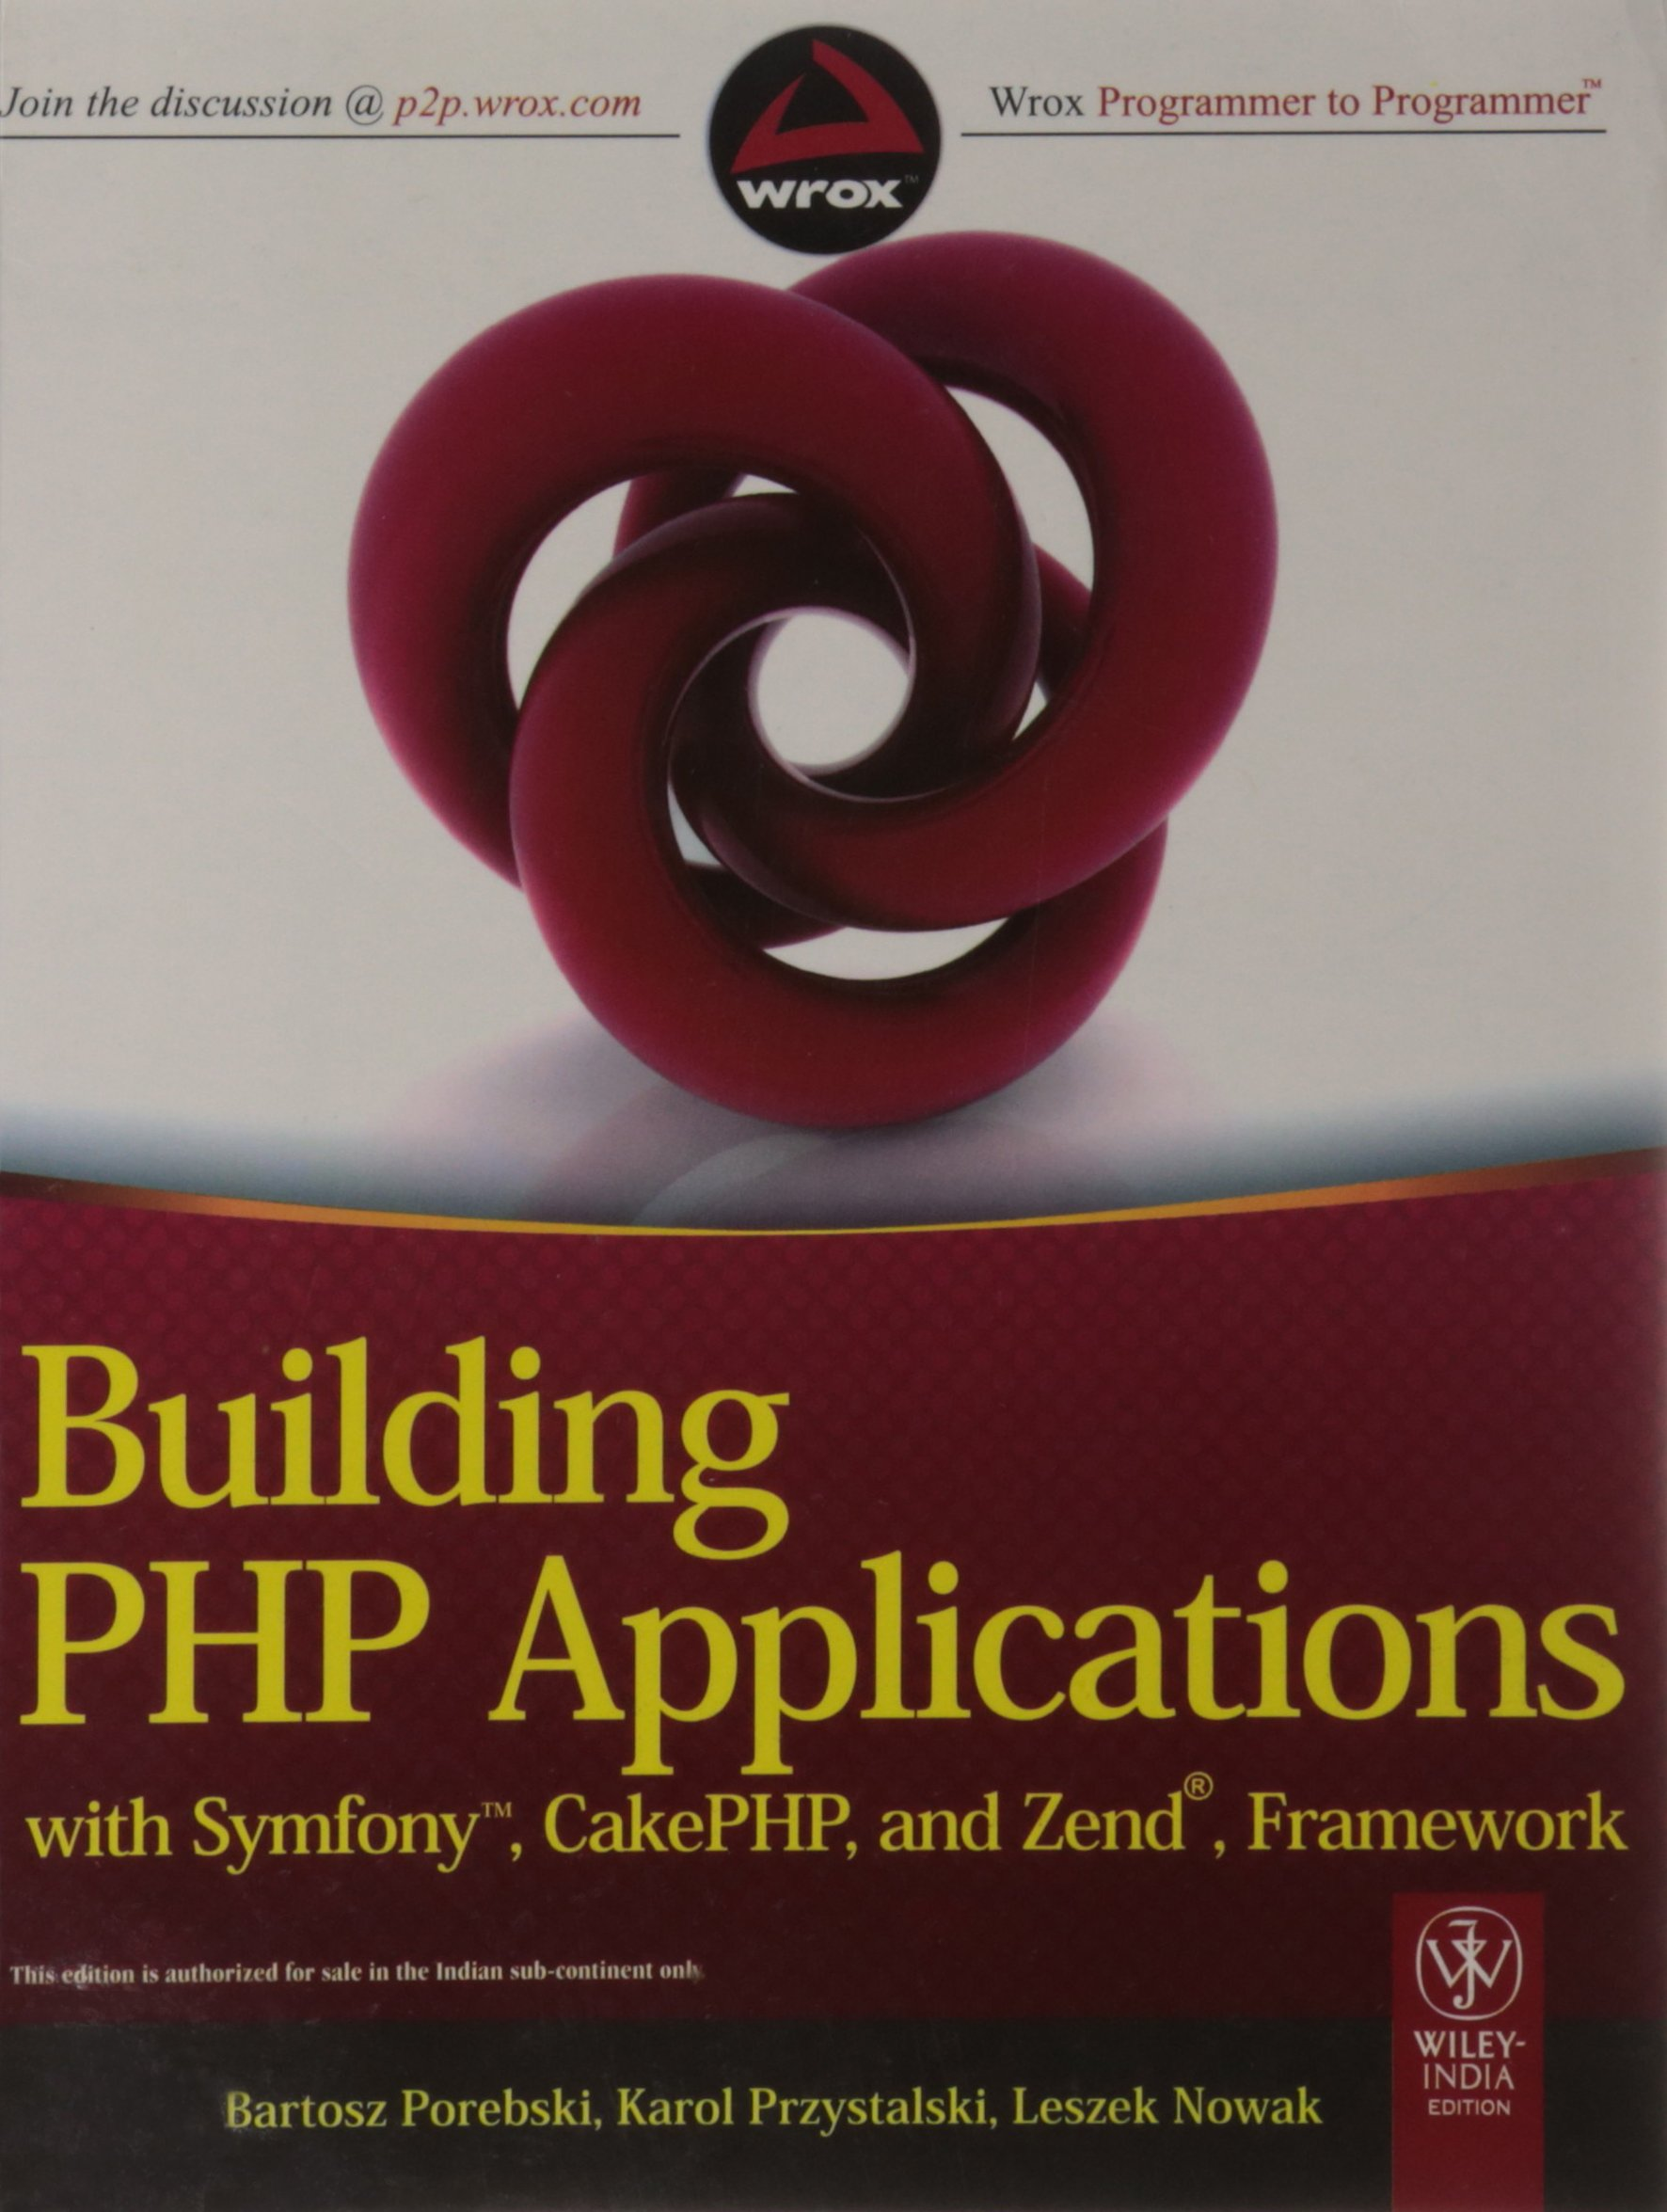 Building PHP Applications with Symfony, CakePHP & Zend